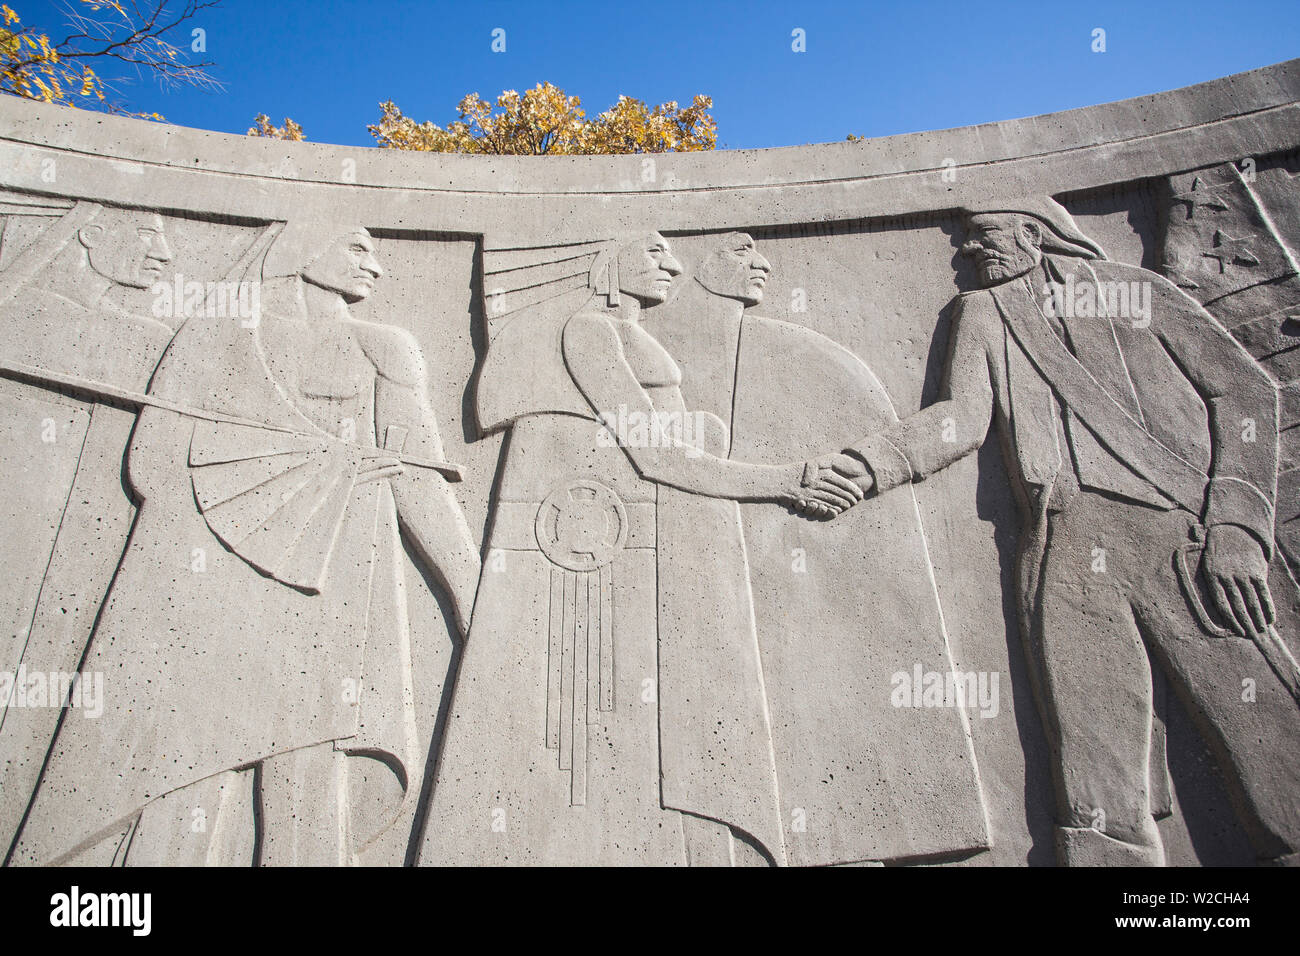 USA, Iowa, Council Bluffs, Lewis and Clark Monument - Stock Image